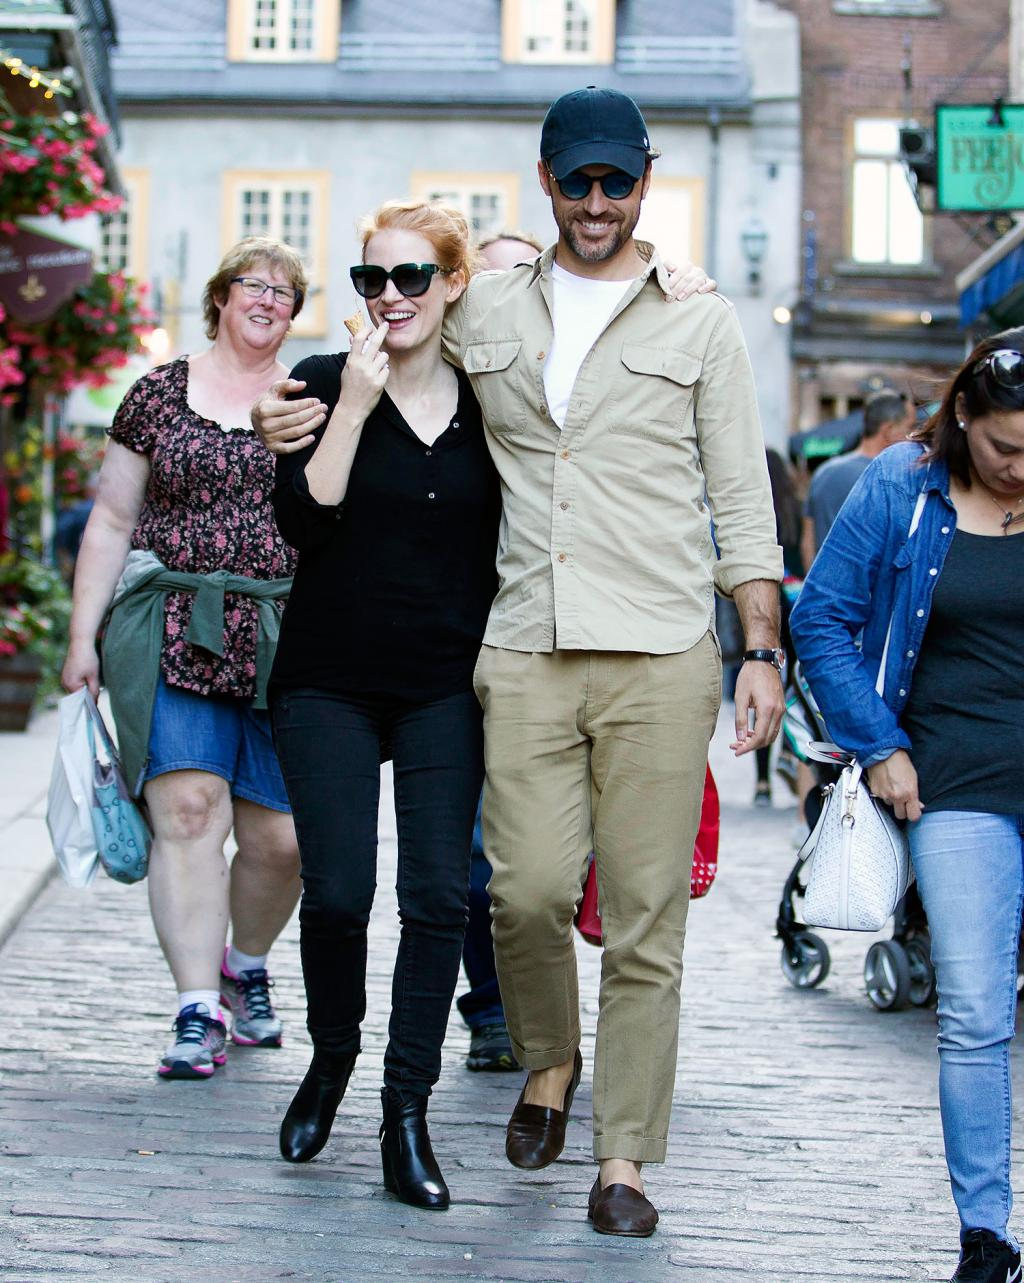 Newlywed Bliss! Jessica Chastain and Her Husband Look Happier than Ever in Quebec City